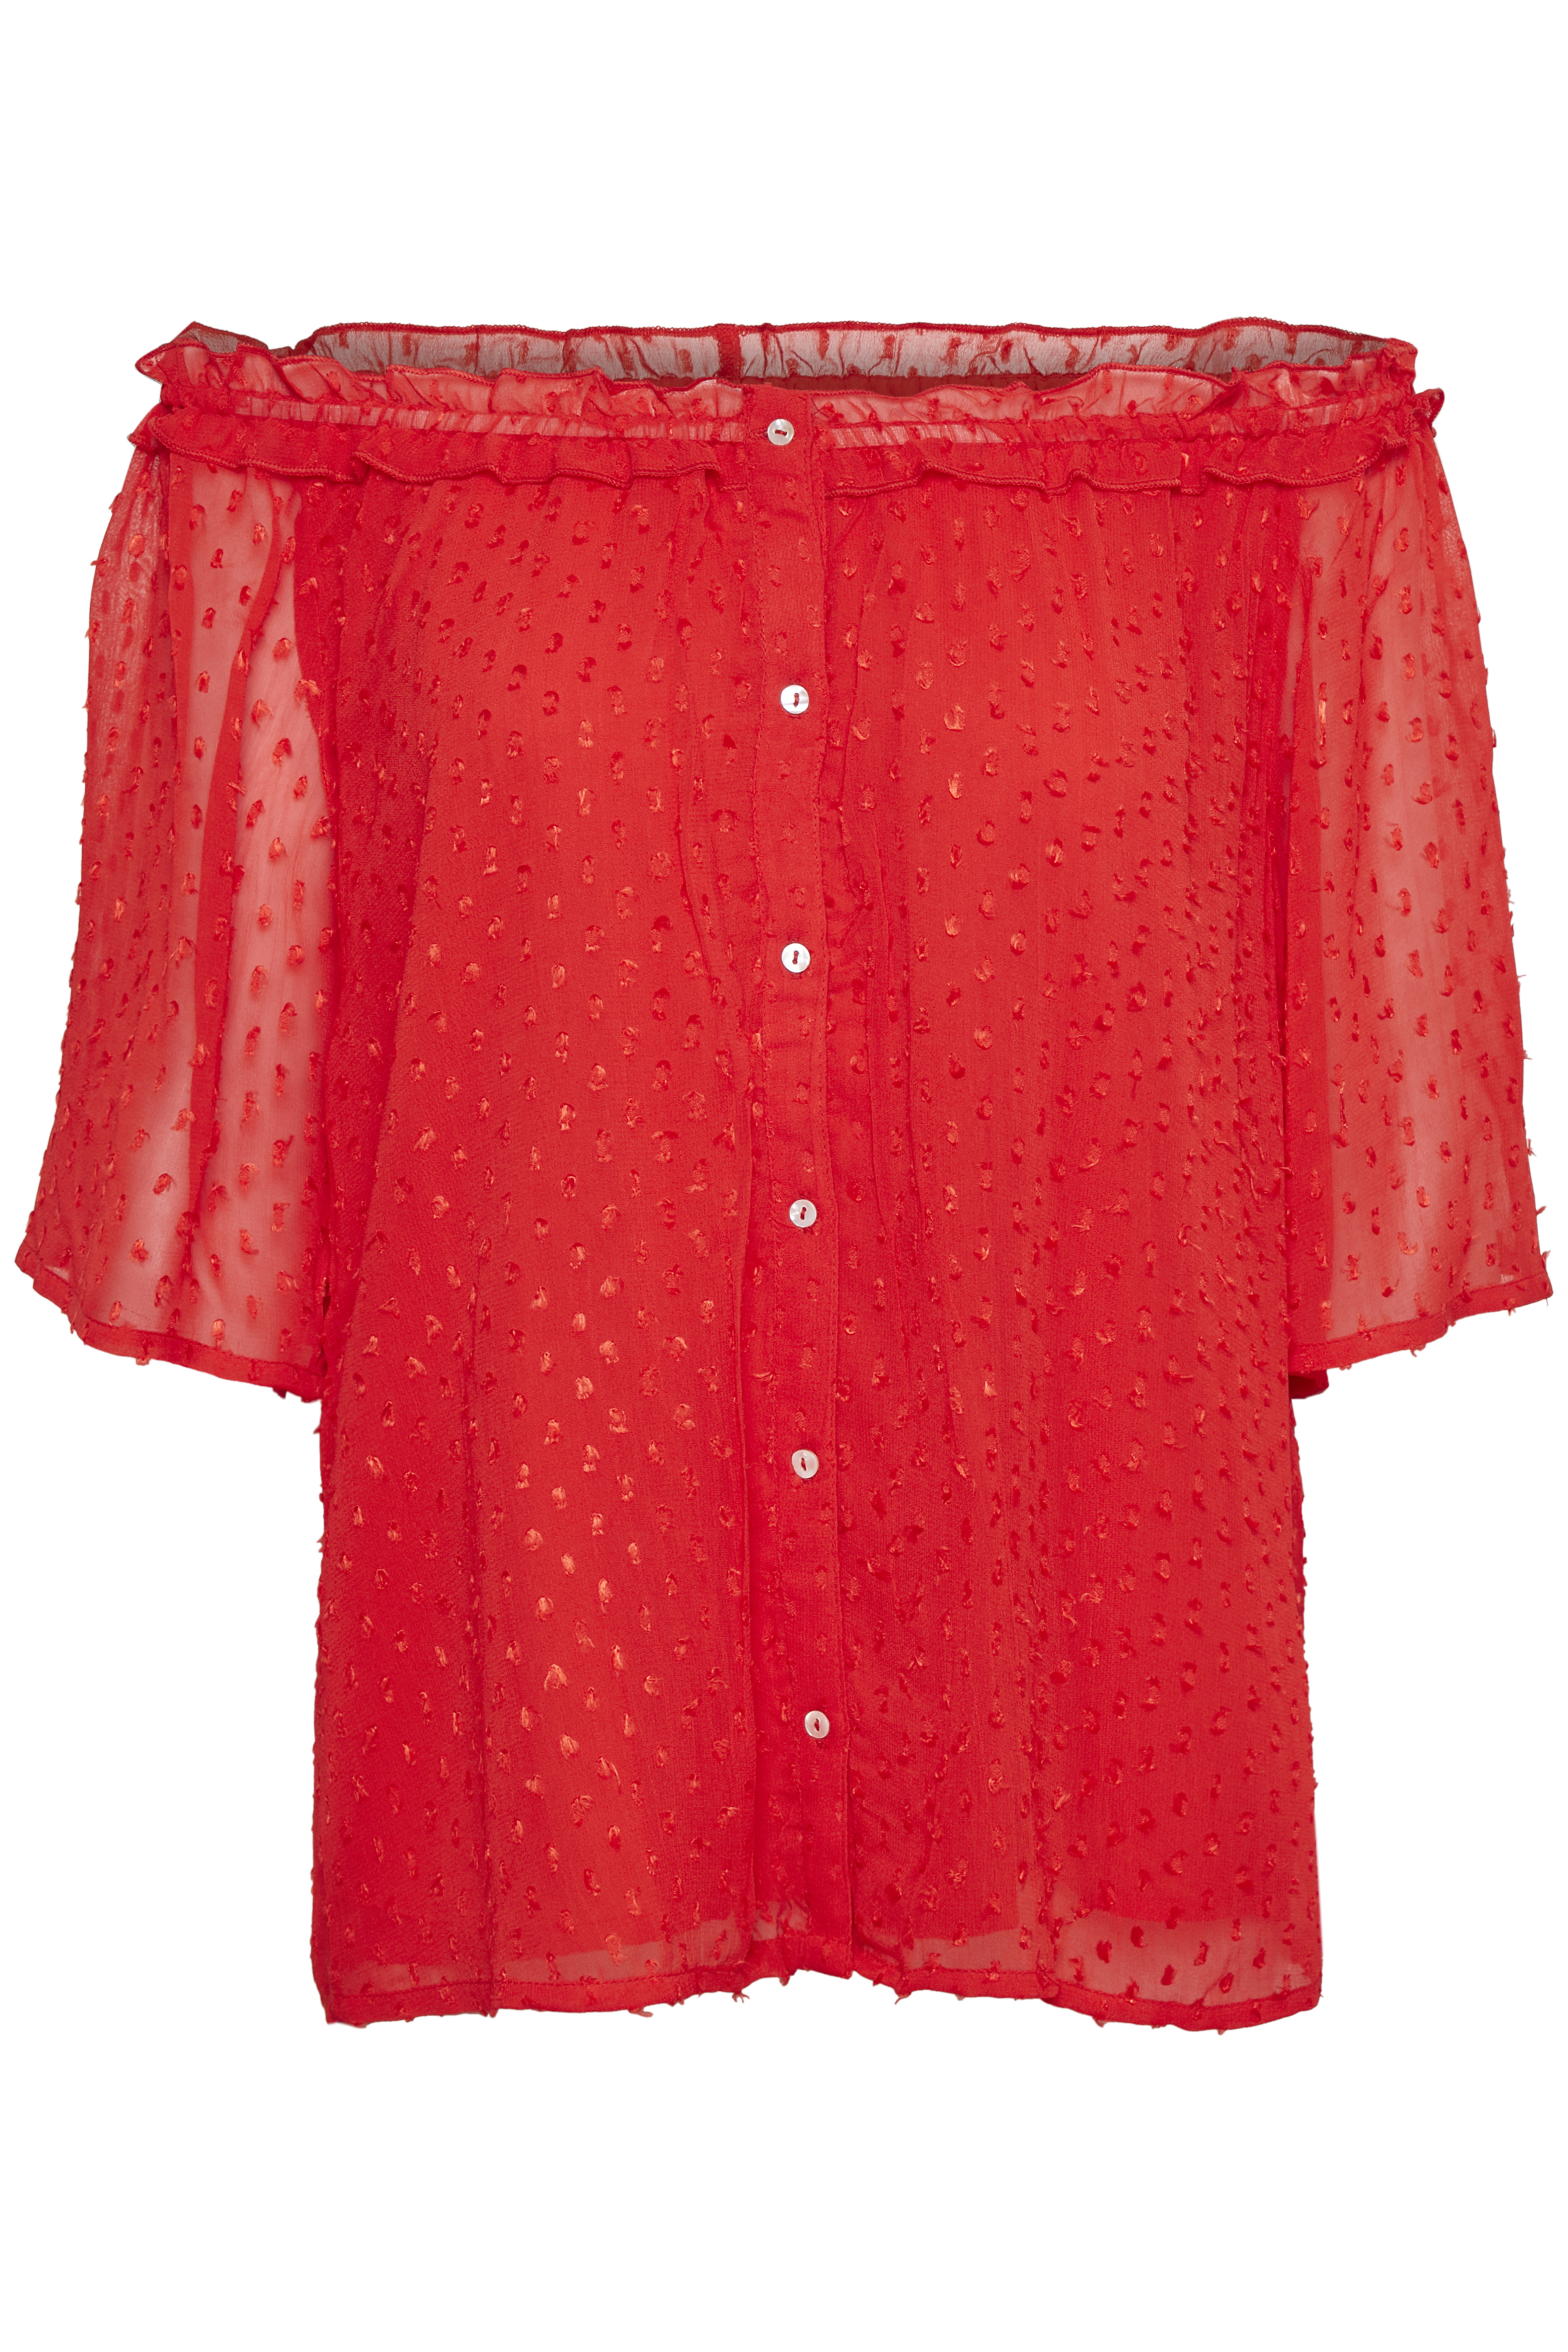 Image of   Part Two Dame Top - Fiery Red